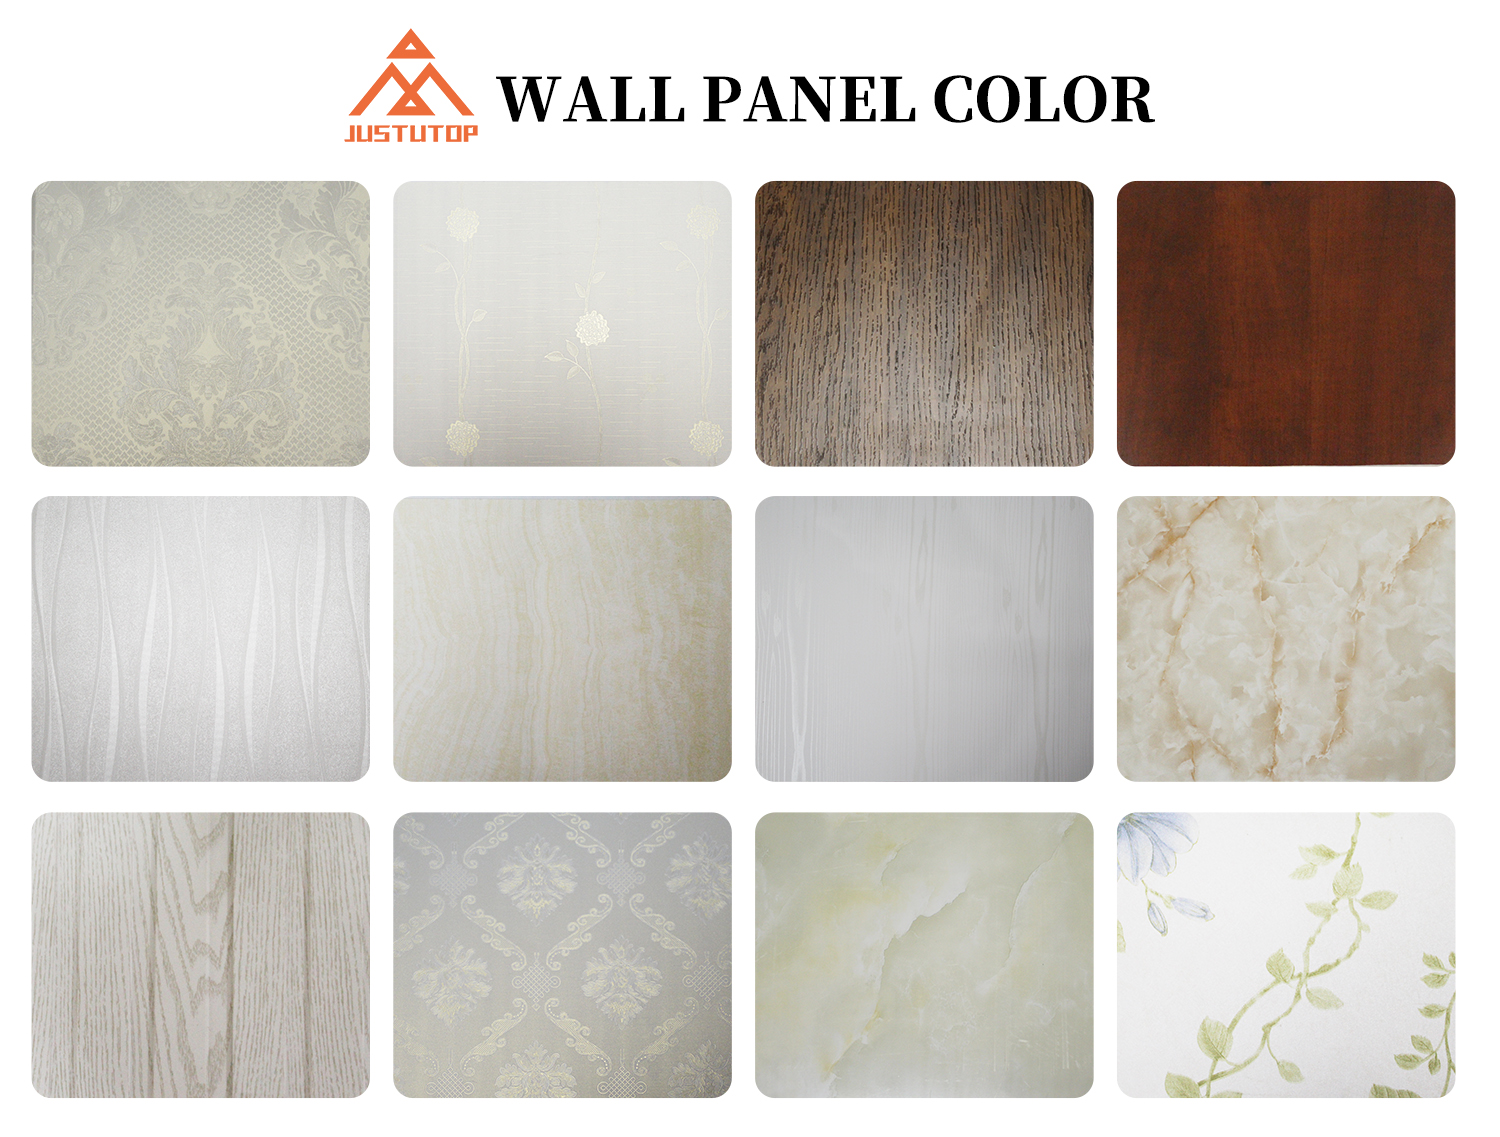 hotel decorative wall panel,spc wall panel,decorative wall panel